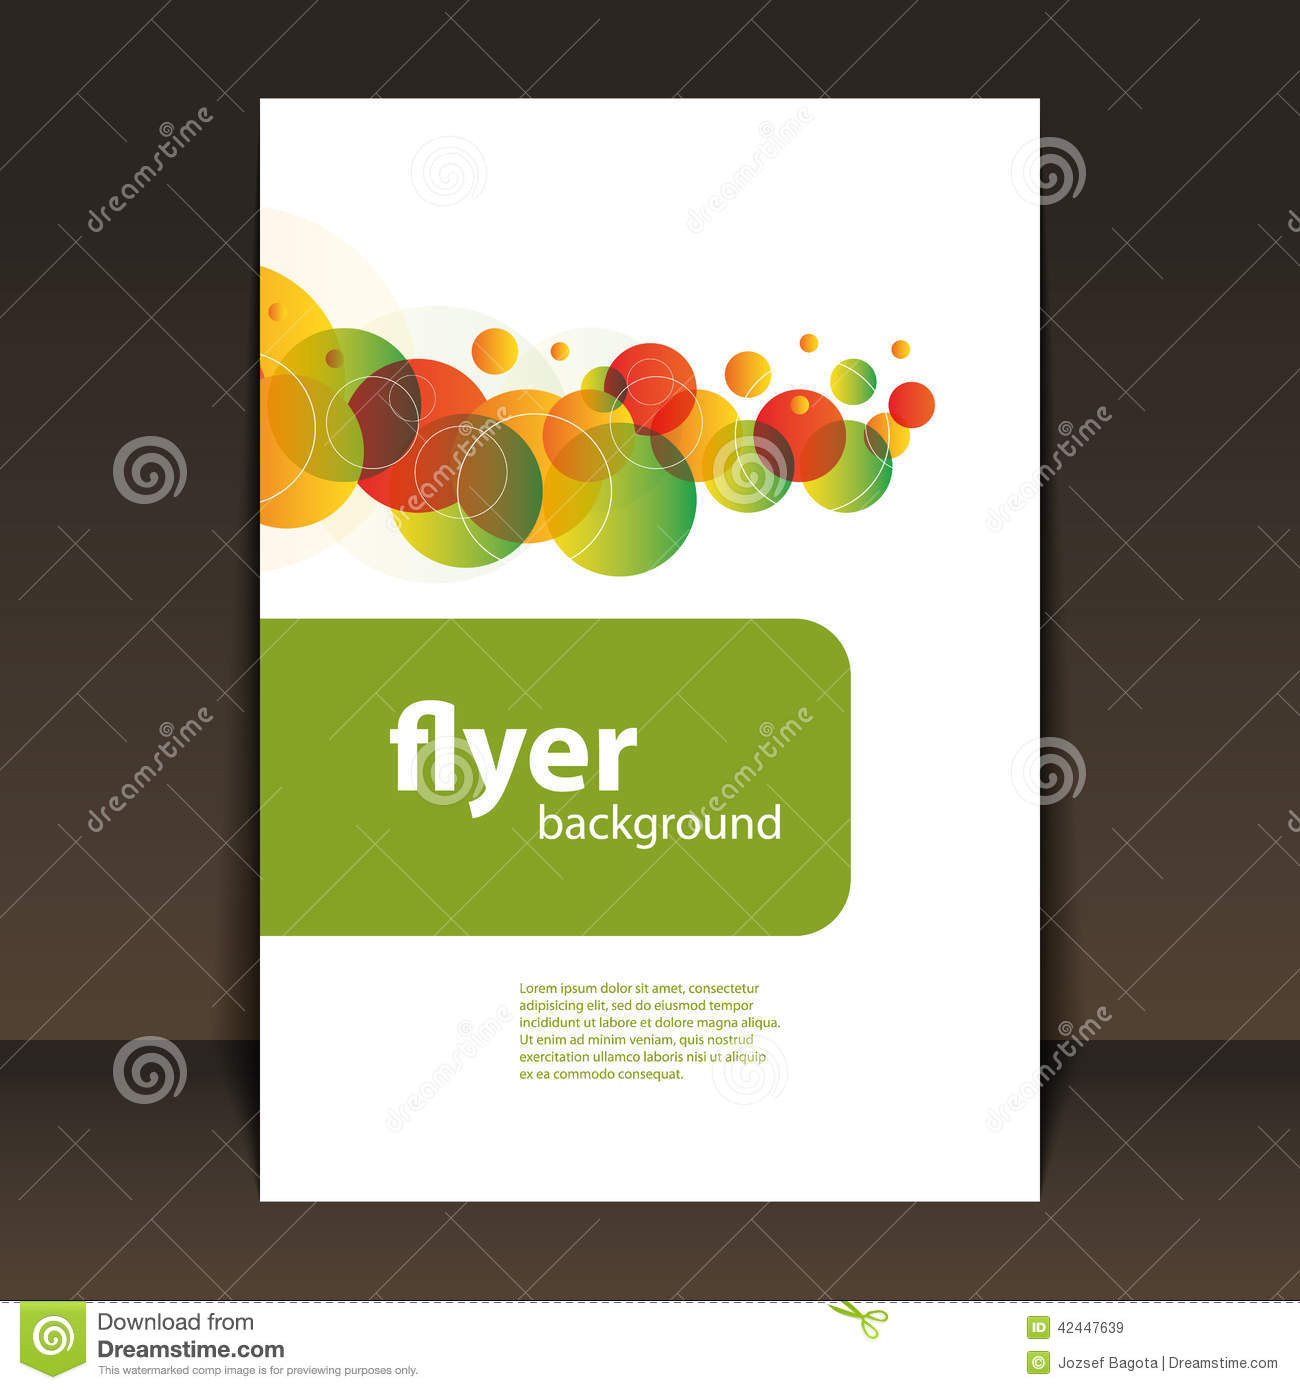 Flyer or cover design circles pattern background stock for Free downloadable poster templates